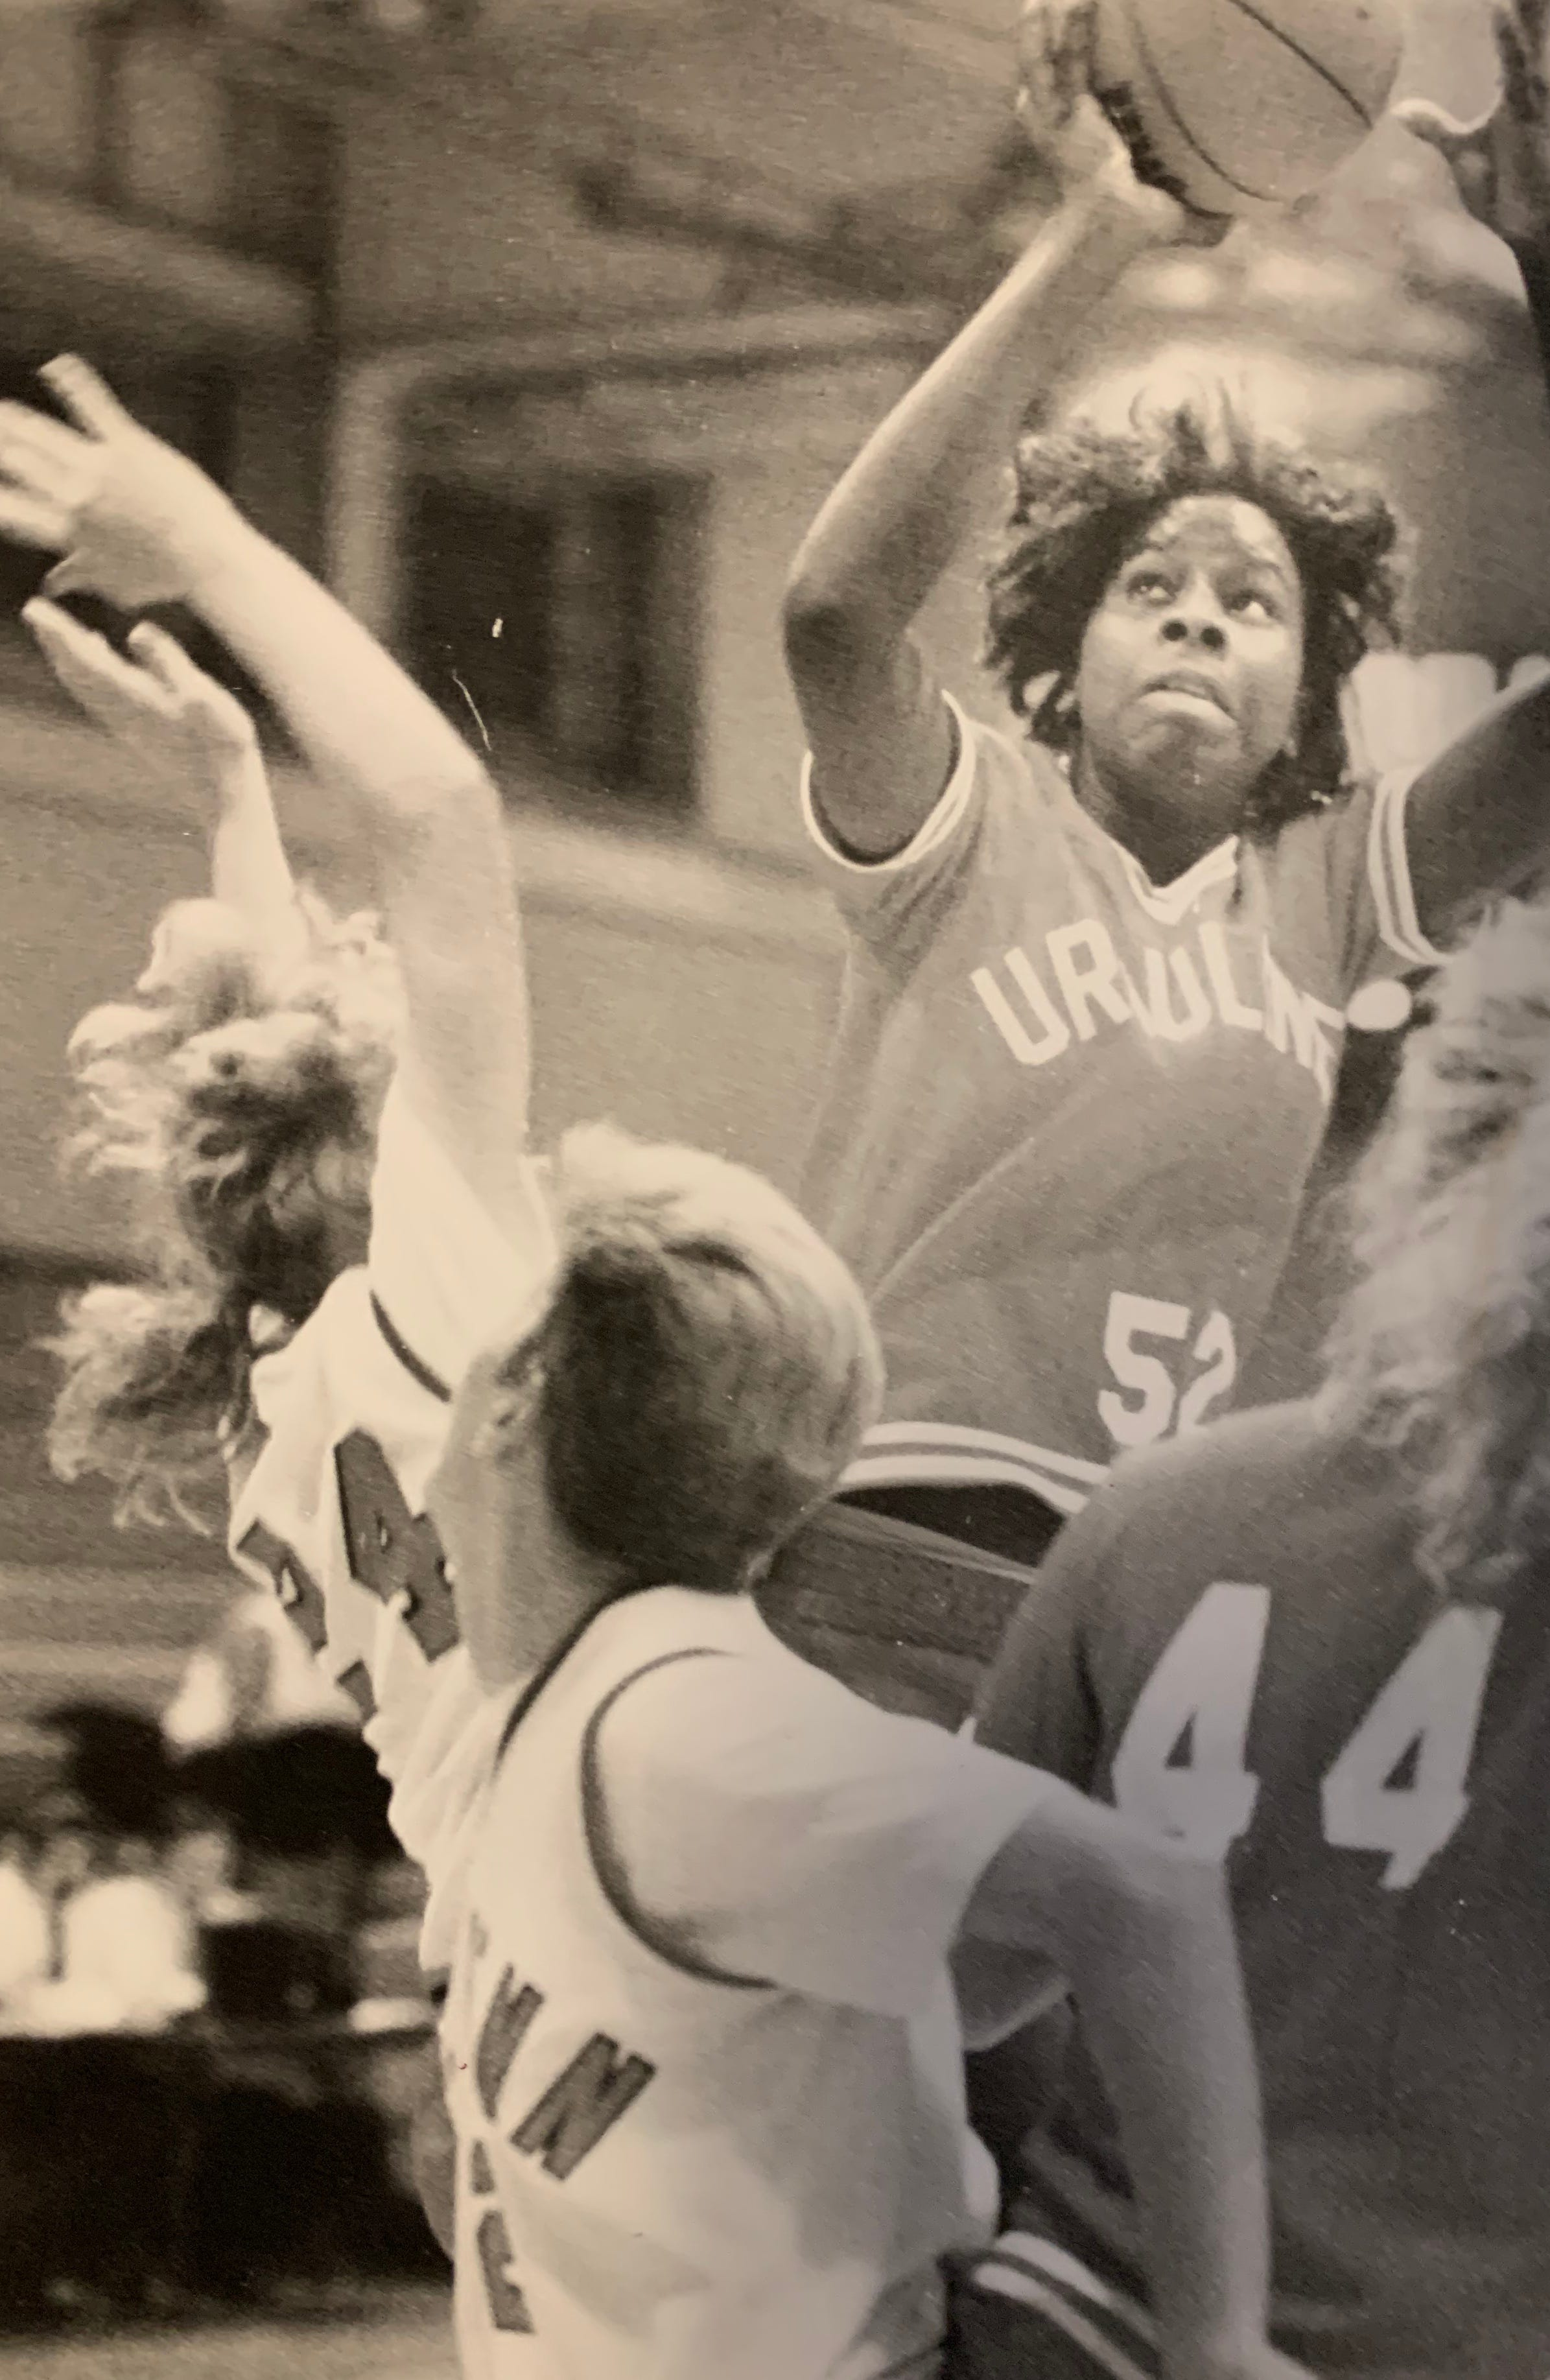 Val Whiting was three-time state player of the year and won three state titles at Ursuline.